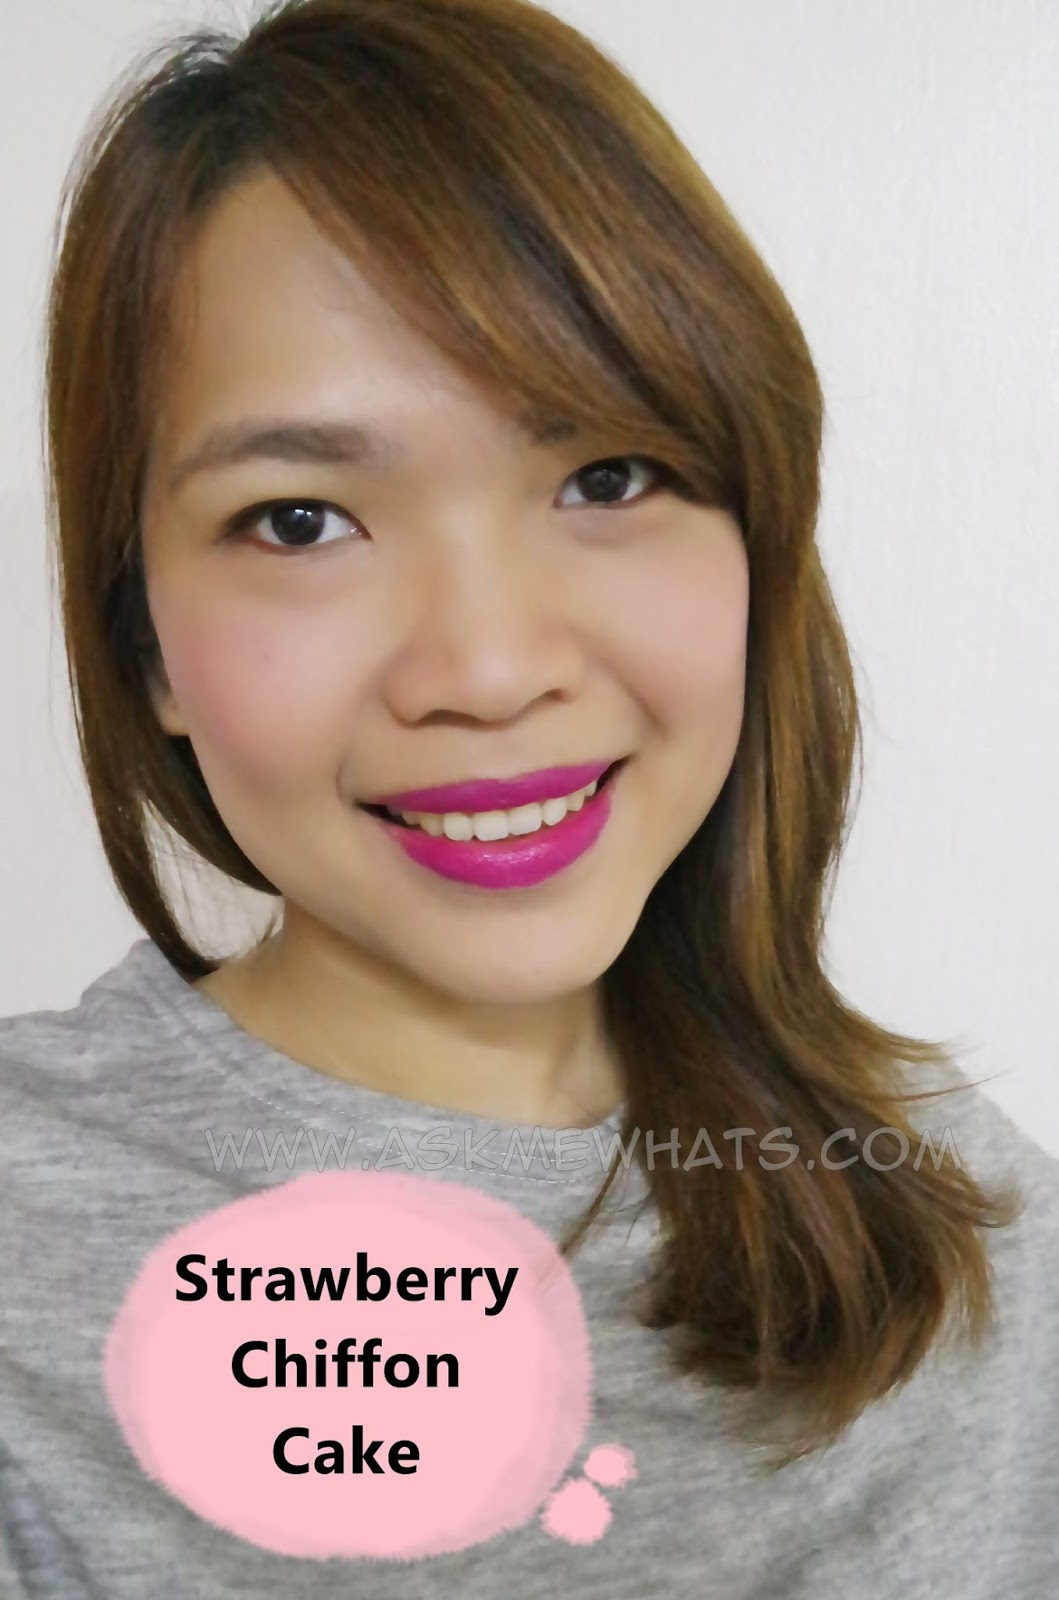 Etude House Sweet Recipe Cupcake All Over Color review in strawberry chiffon cake